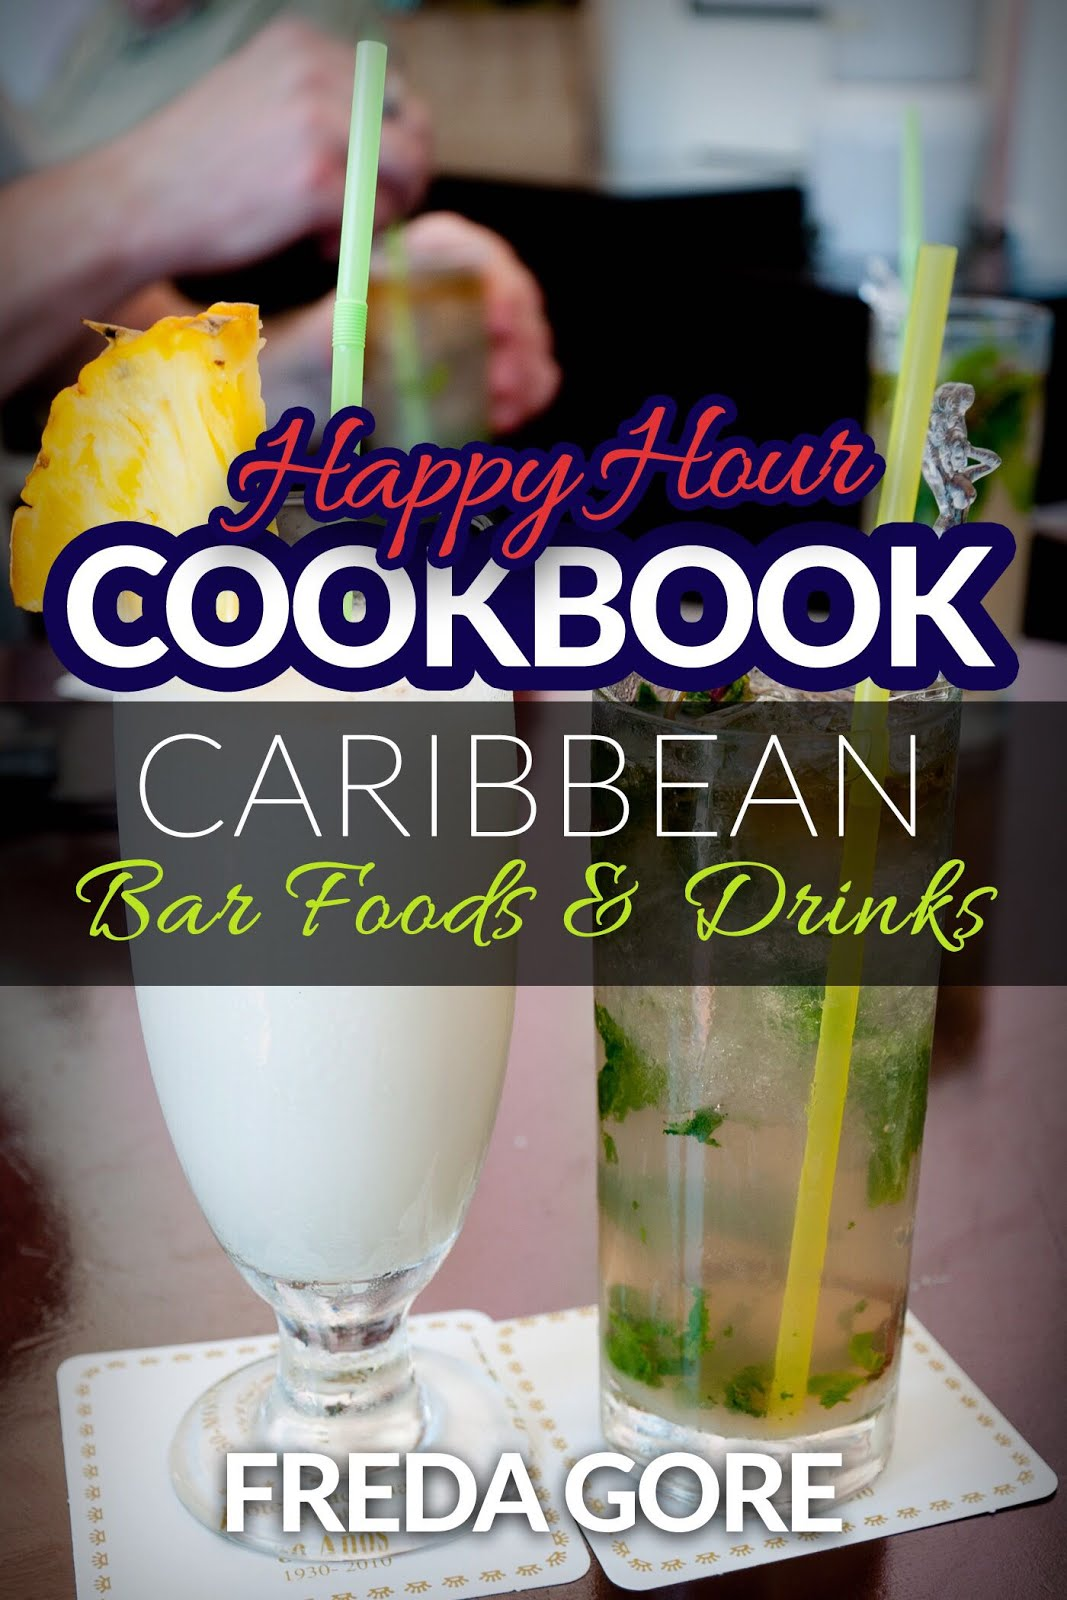 Happy Hour Cookbook